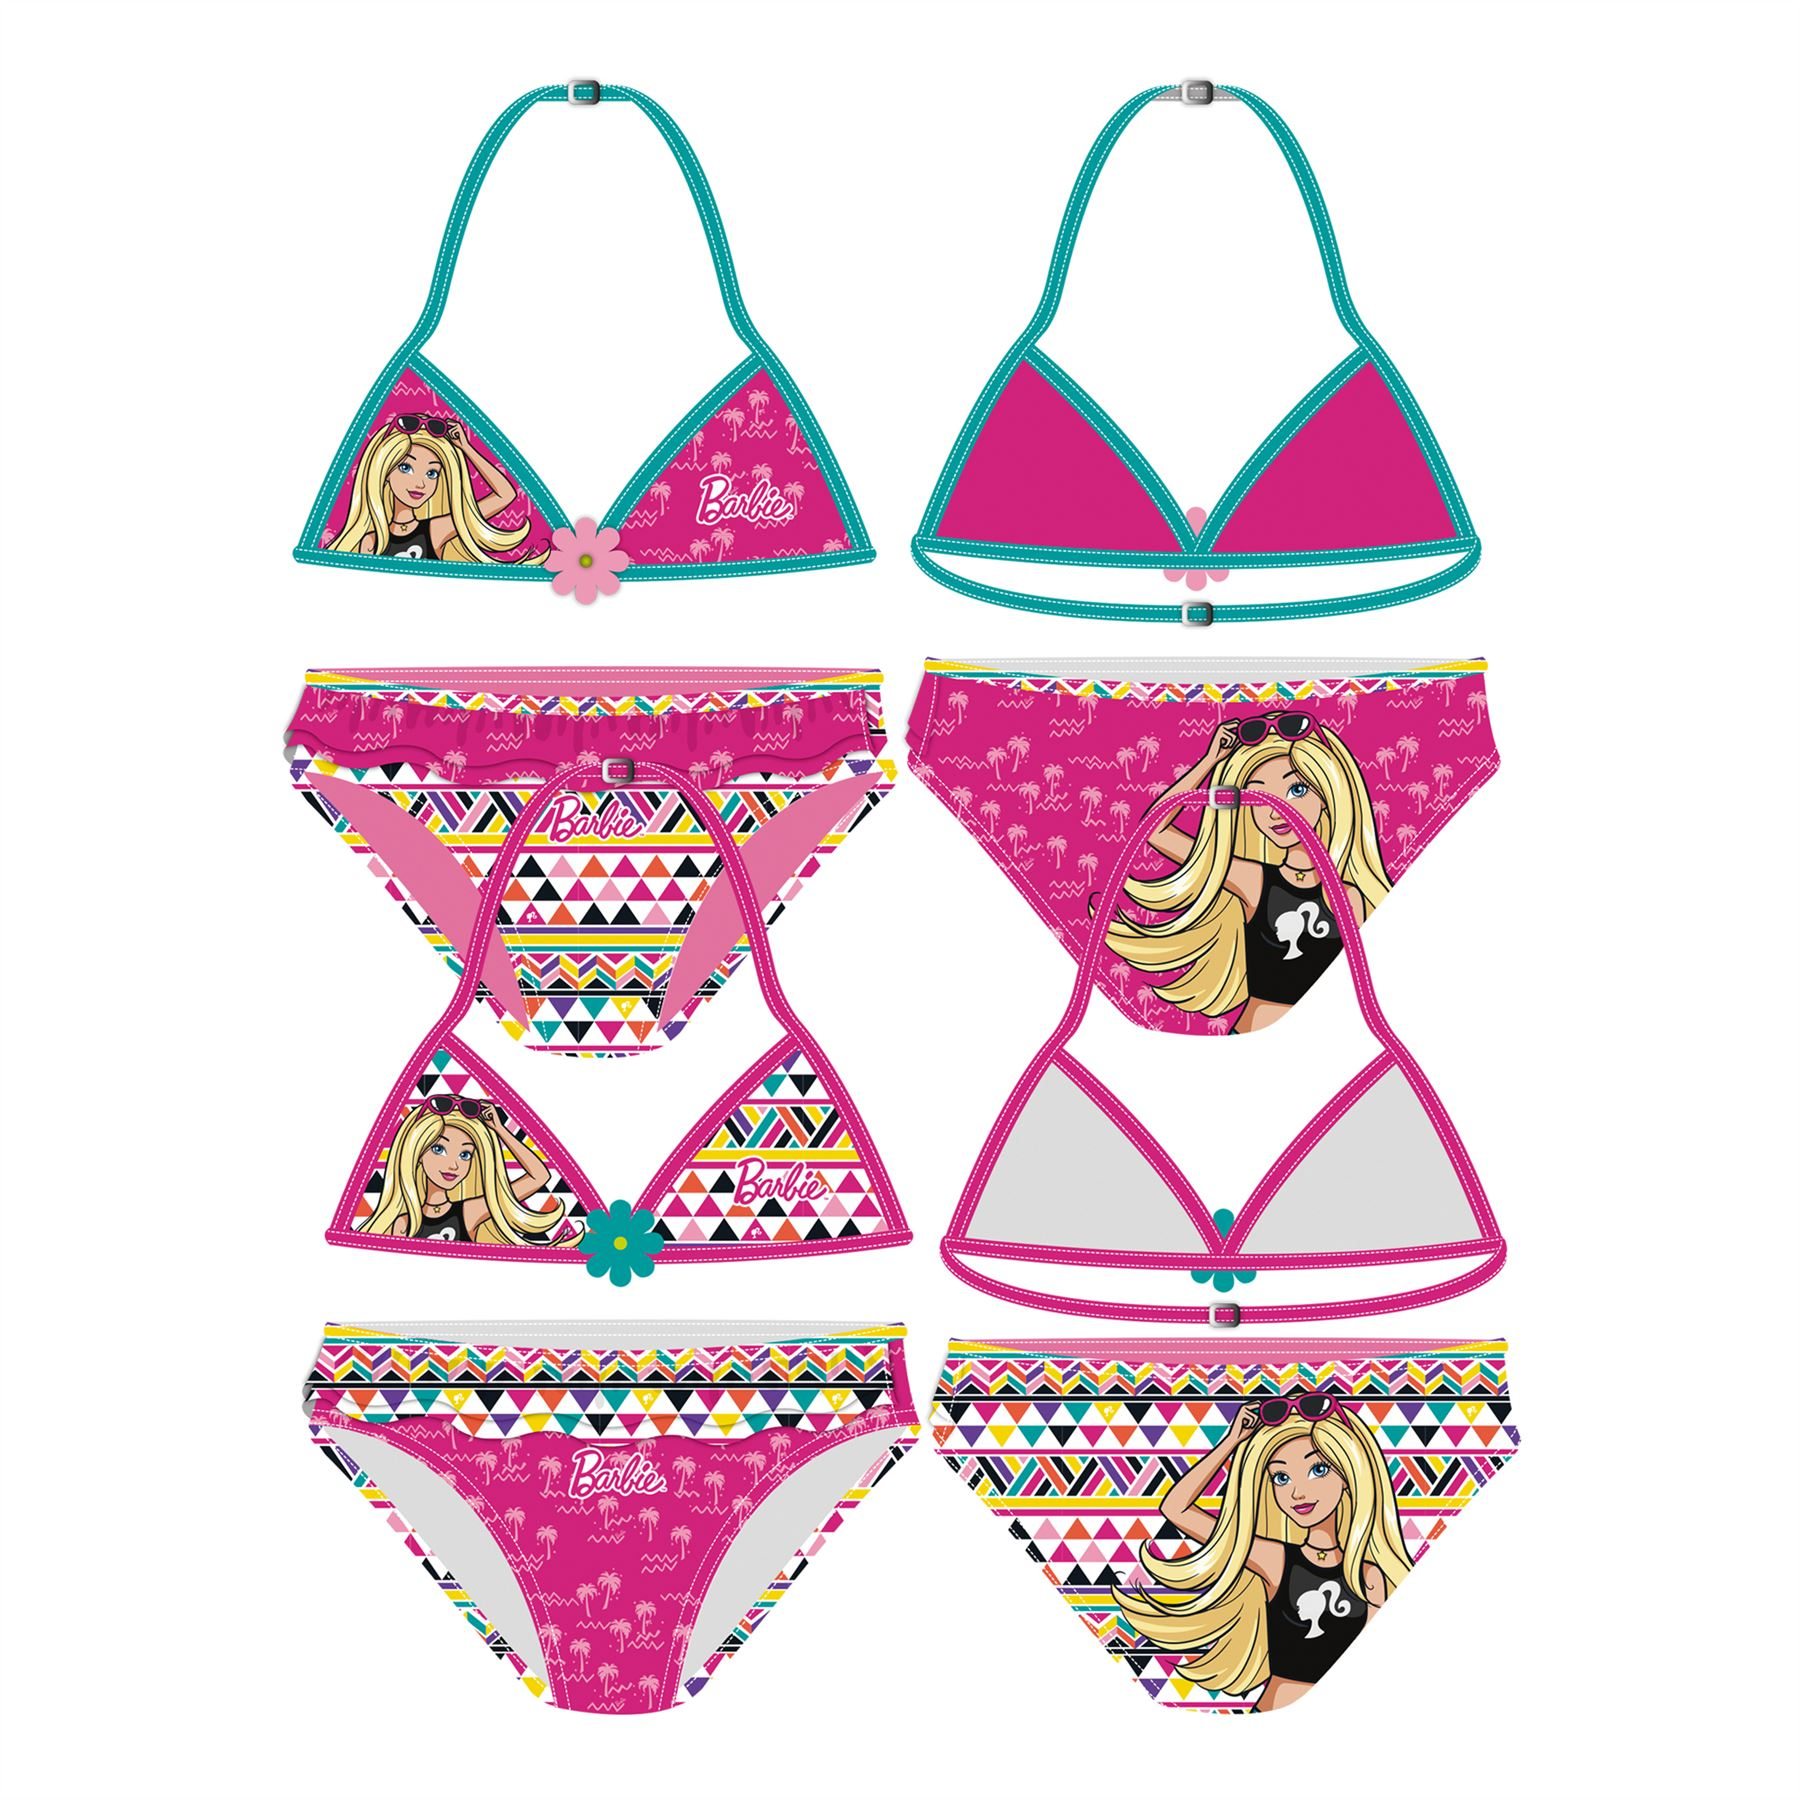 Girls-Bikini-Set-Childrens-Kids-Swimming-Costume-Age-3-8-Years thumbnail 3